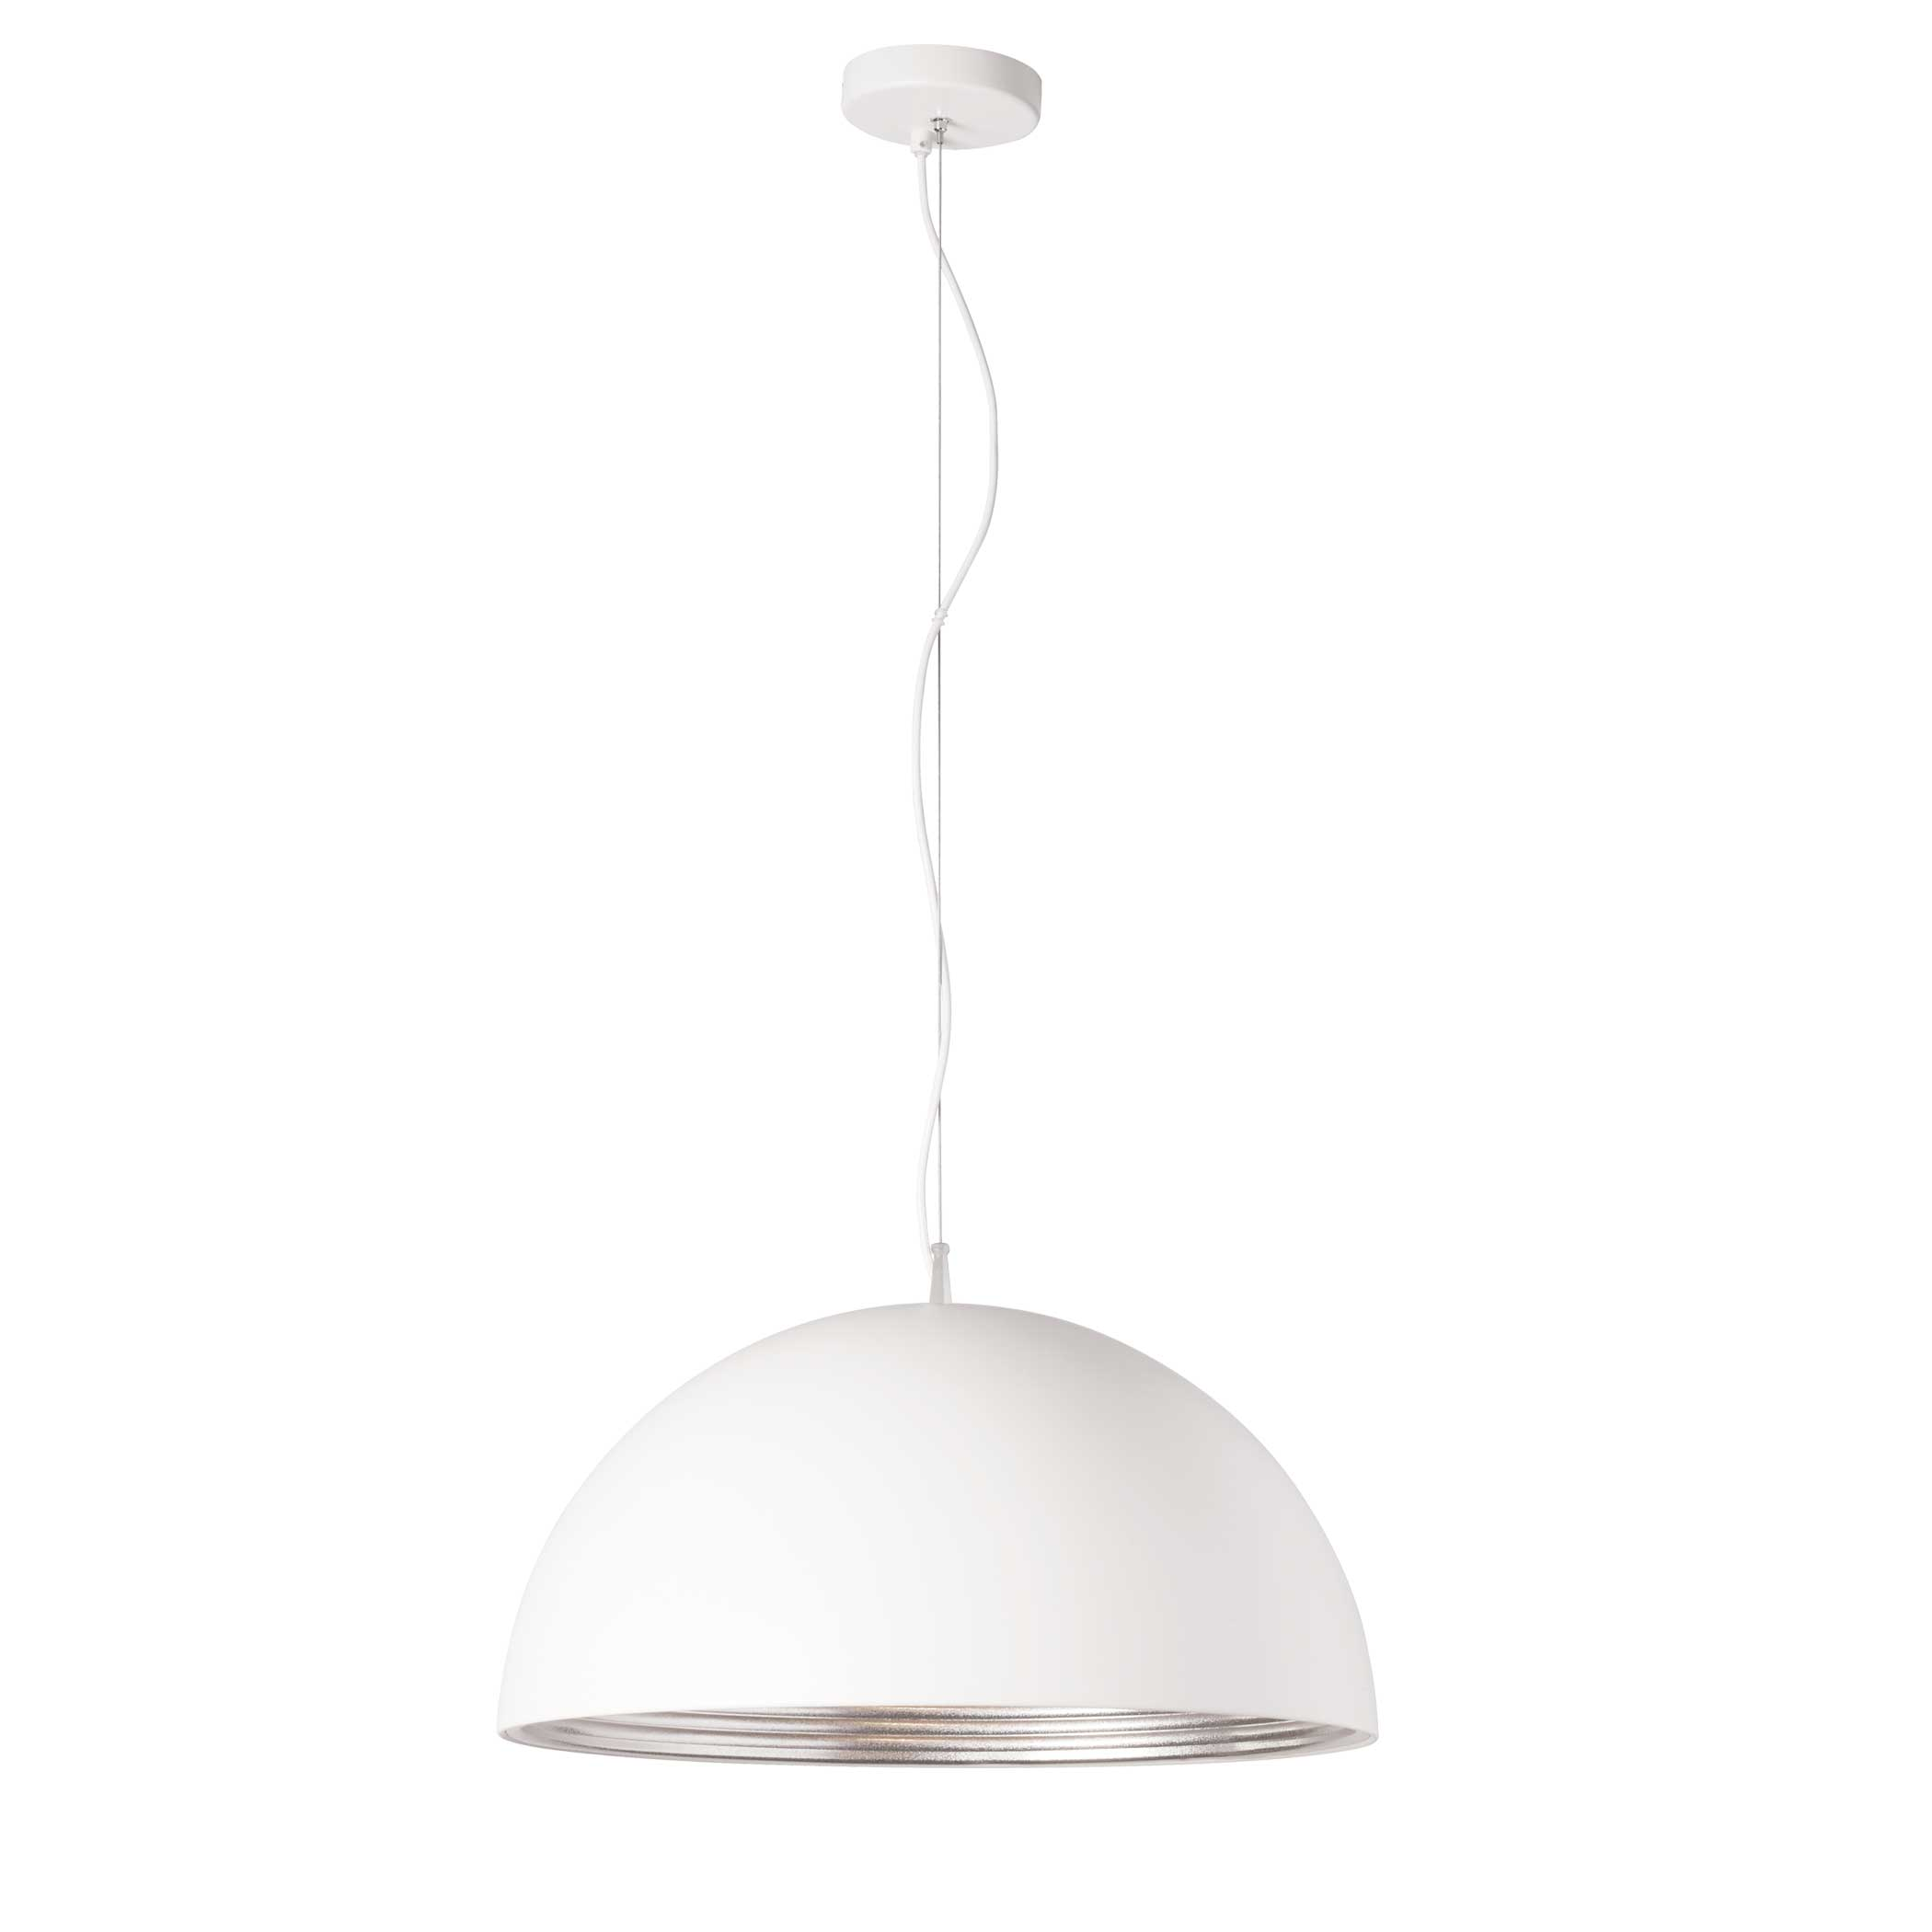 Sleek and stylish, the Helsinki line of lighting fixtures adds a chic fashionable note to your home décor.  Helsinki pendant lighting features a solid, opaque shade and canopy in a variety of shapes with gracefully curved lines. The shade comes in your choice of matte black with a gold finish interior or matte white with a silver finish inside to give you warm lighting in skin flattering shades that will complement most colour palettes, including contemporary neutrals. Available in single bulb configurations, Helsinki lighting is ideal for hallways or smaller rooms and areas.